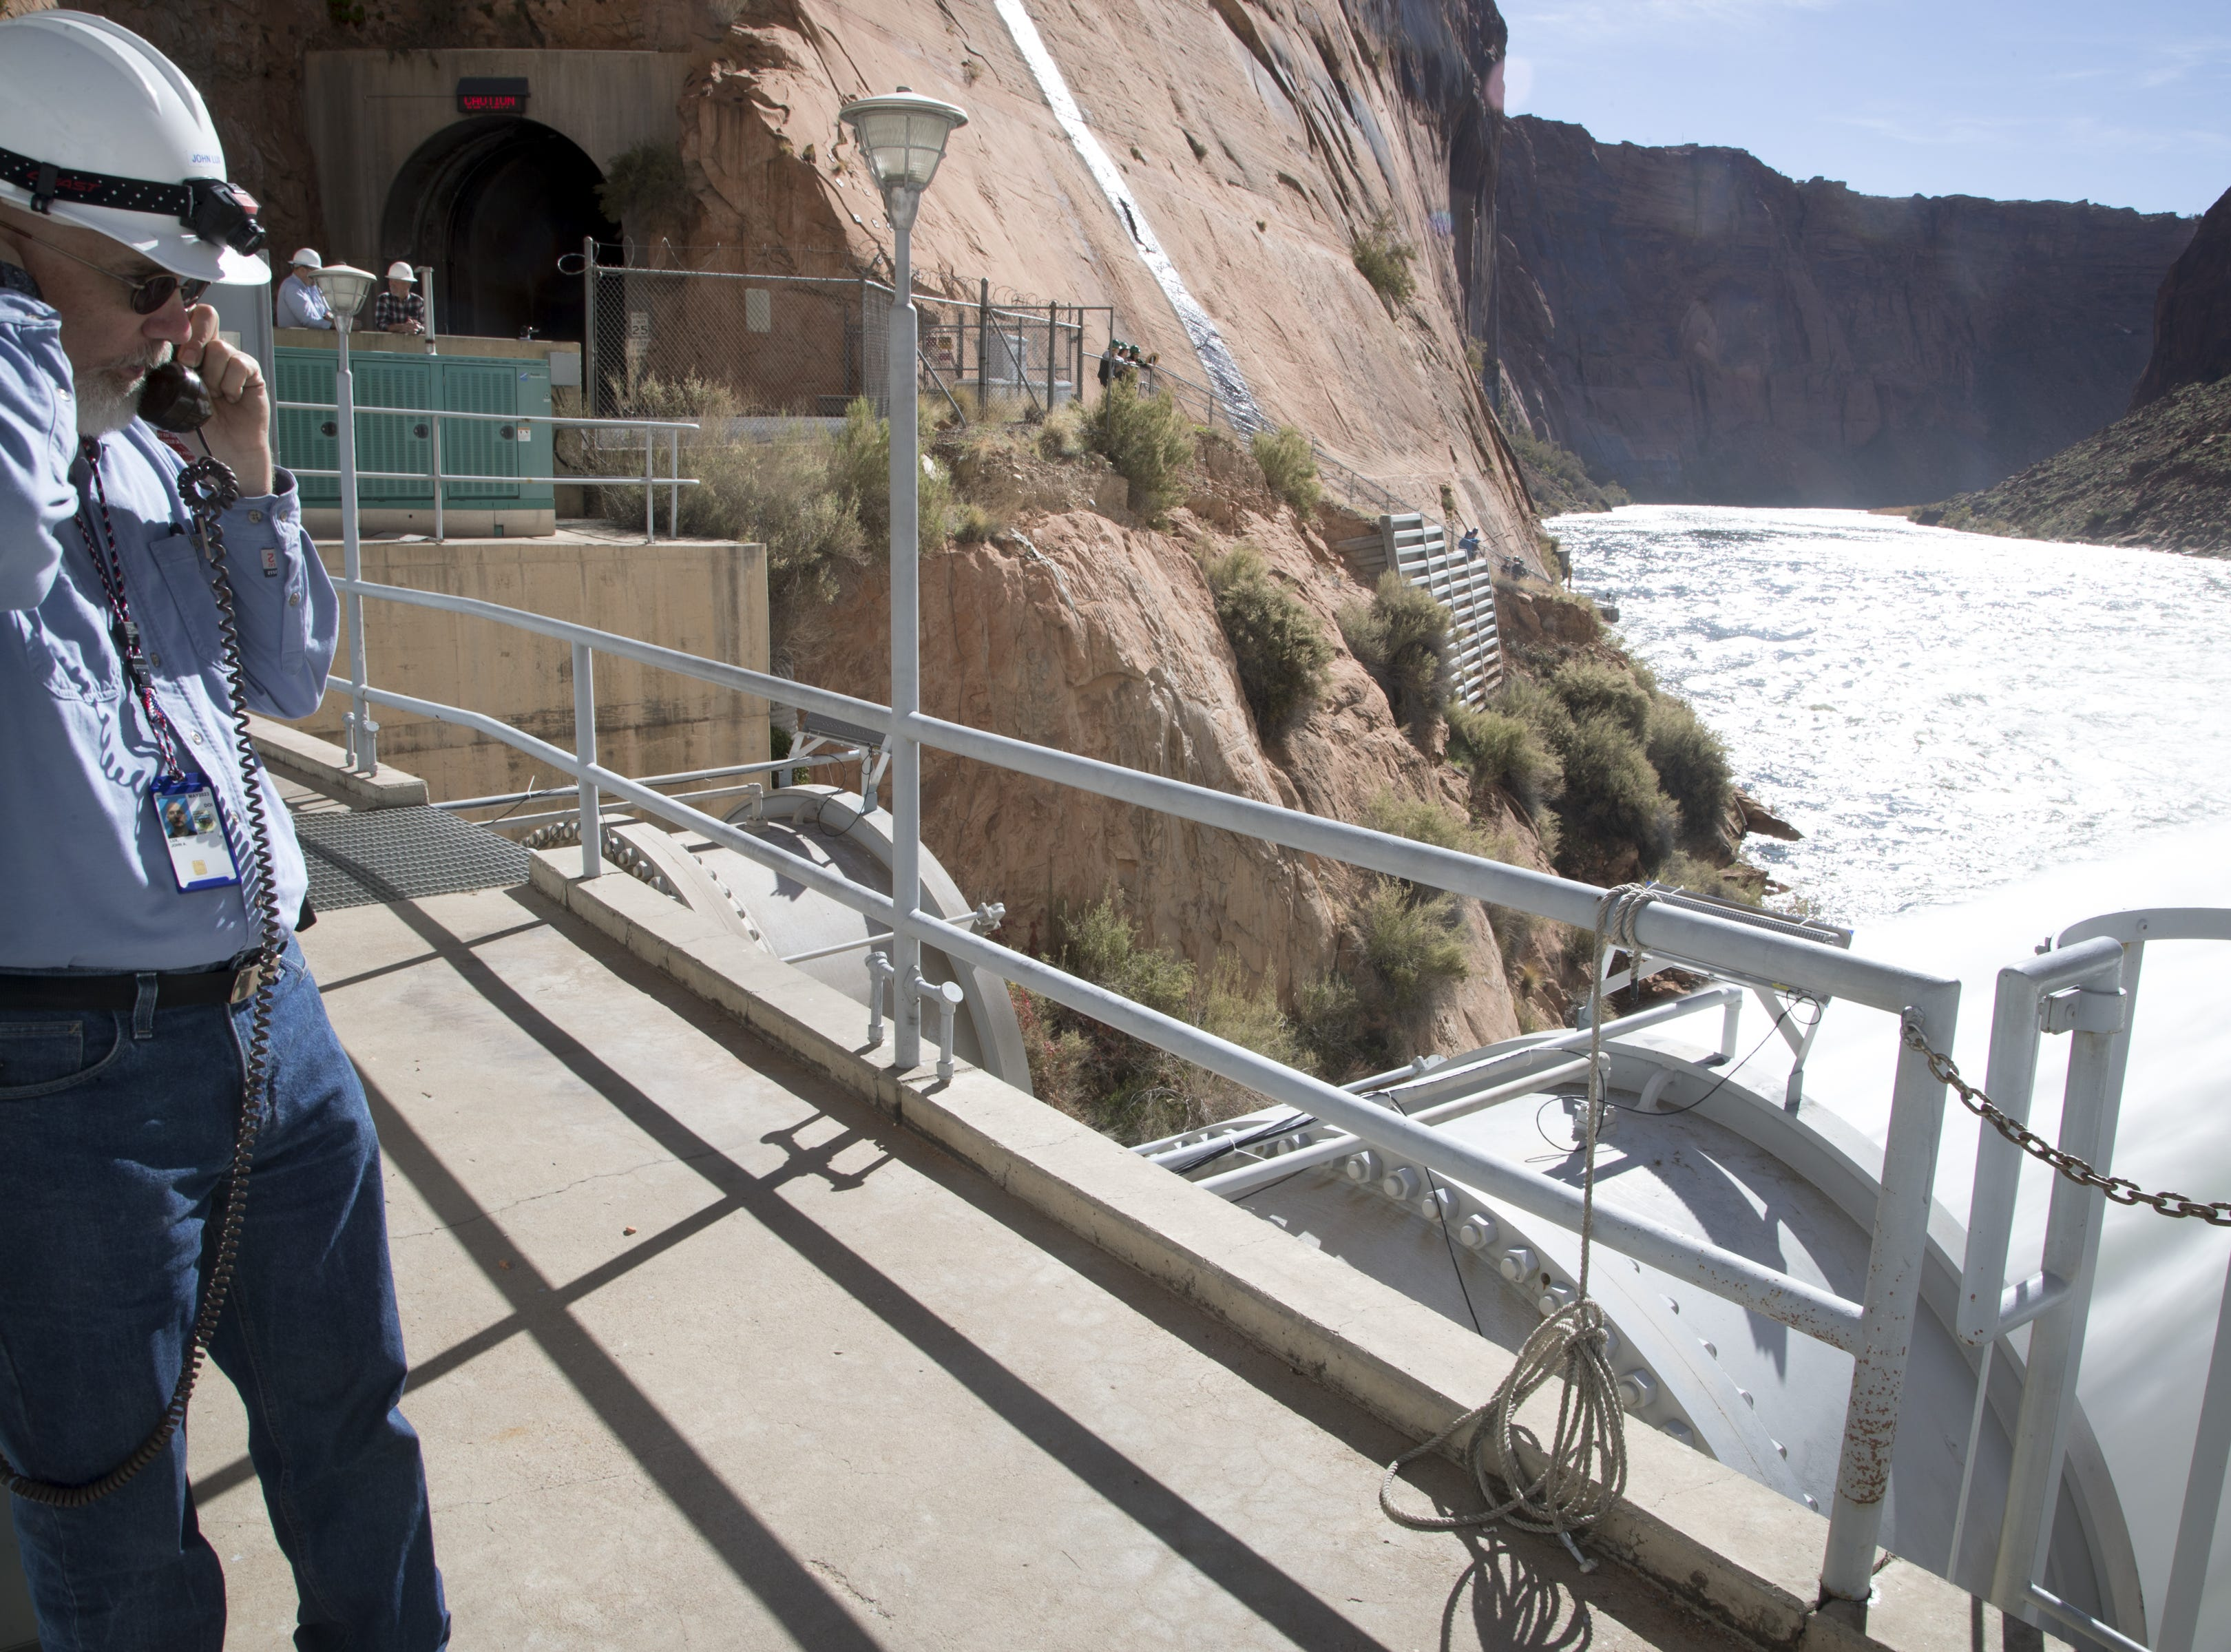 John Lux, a control room operator, opened the bypass tubes at Glen Canyon Dam on Nov. 5, 2018, during a high-flow experiment.